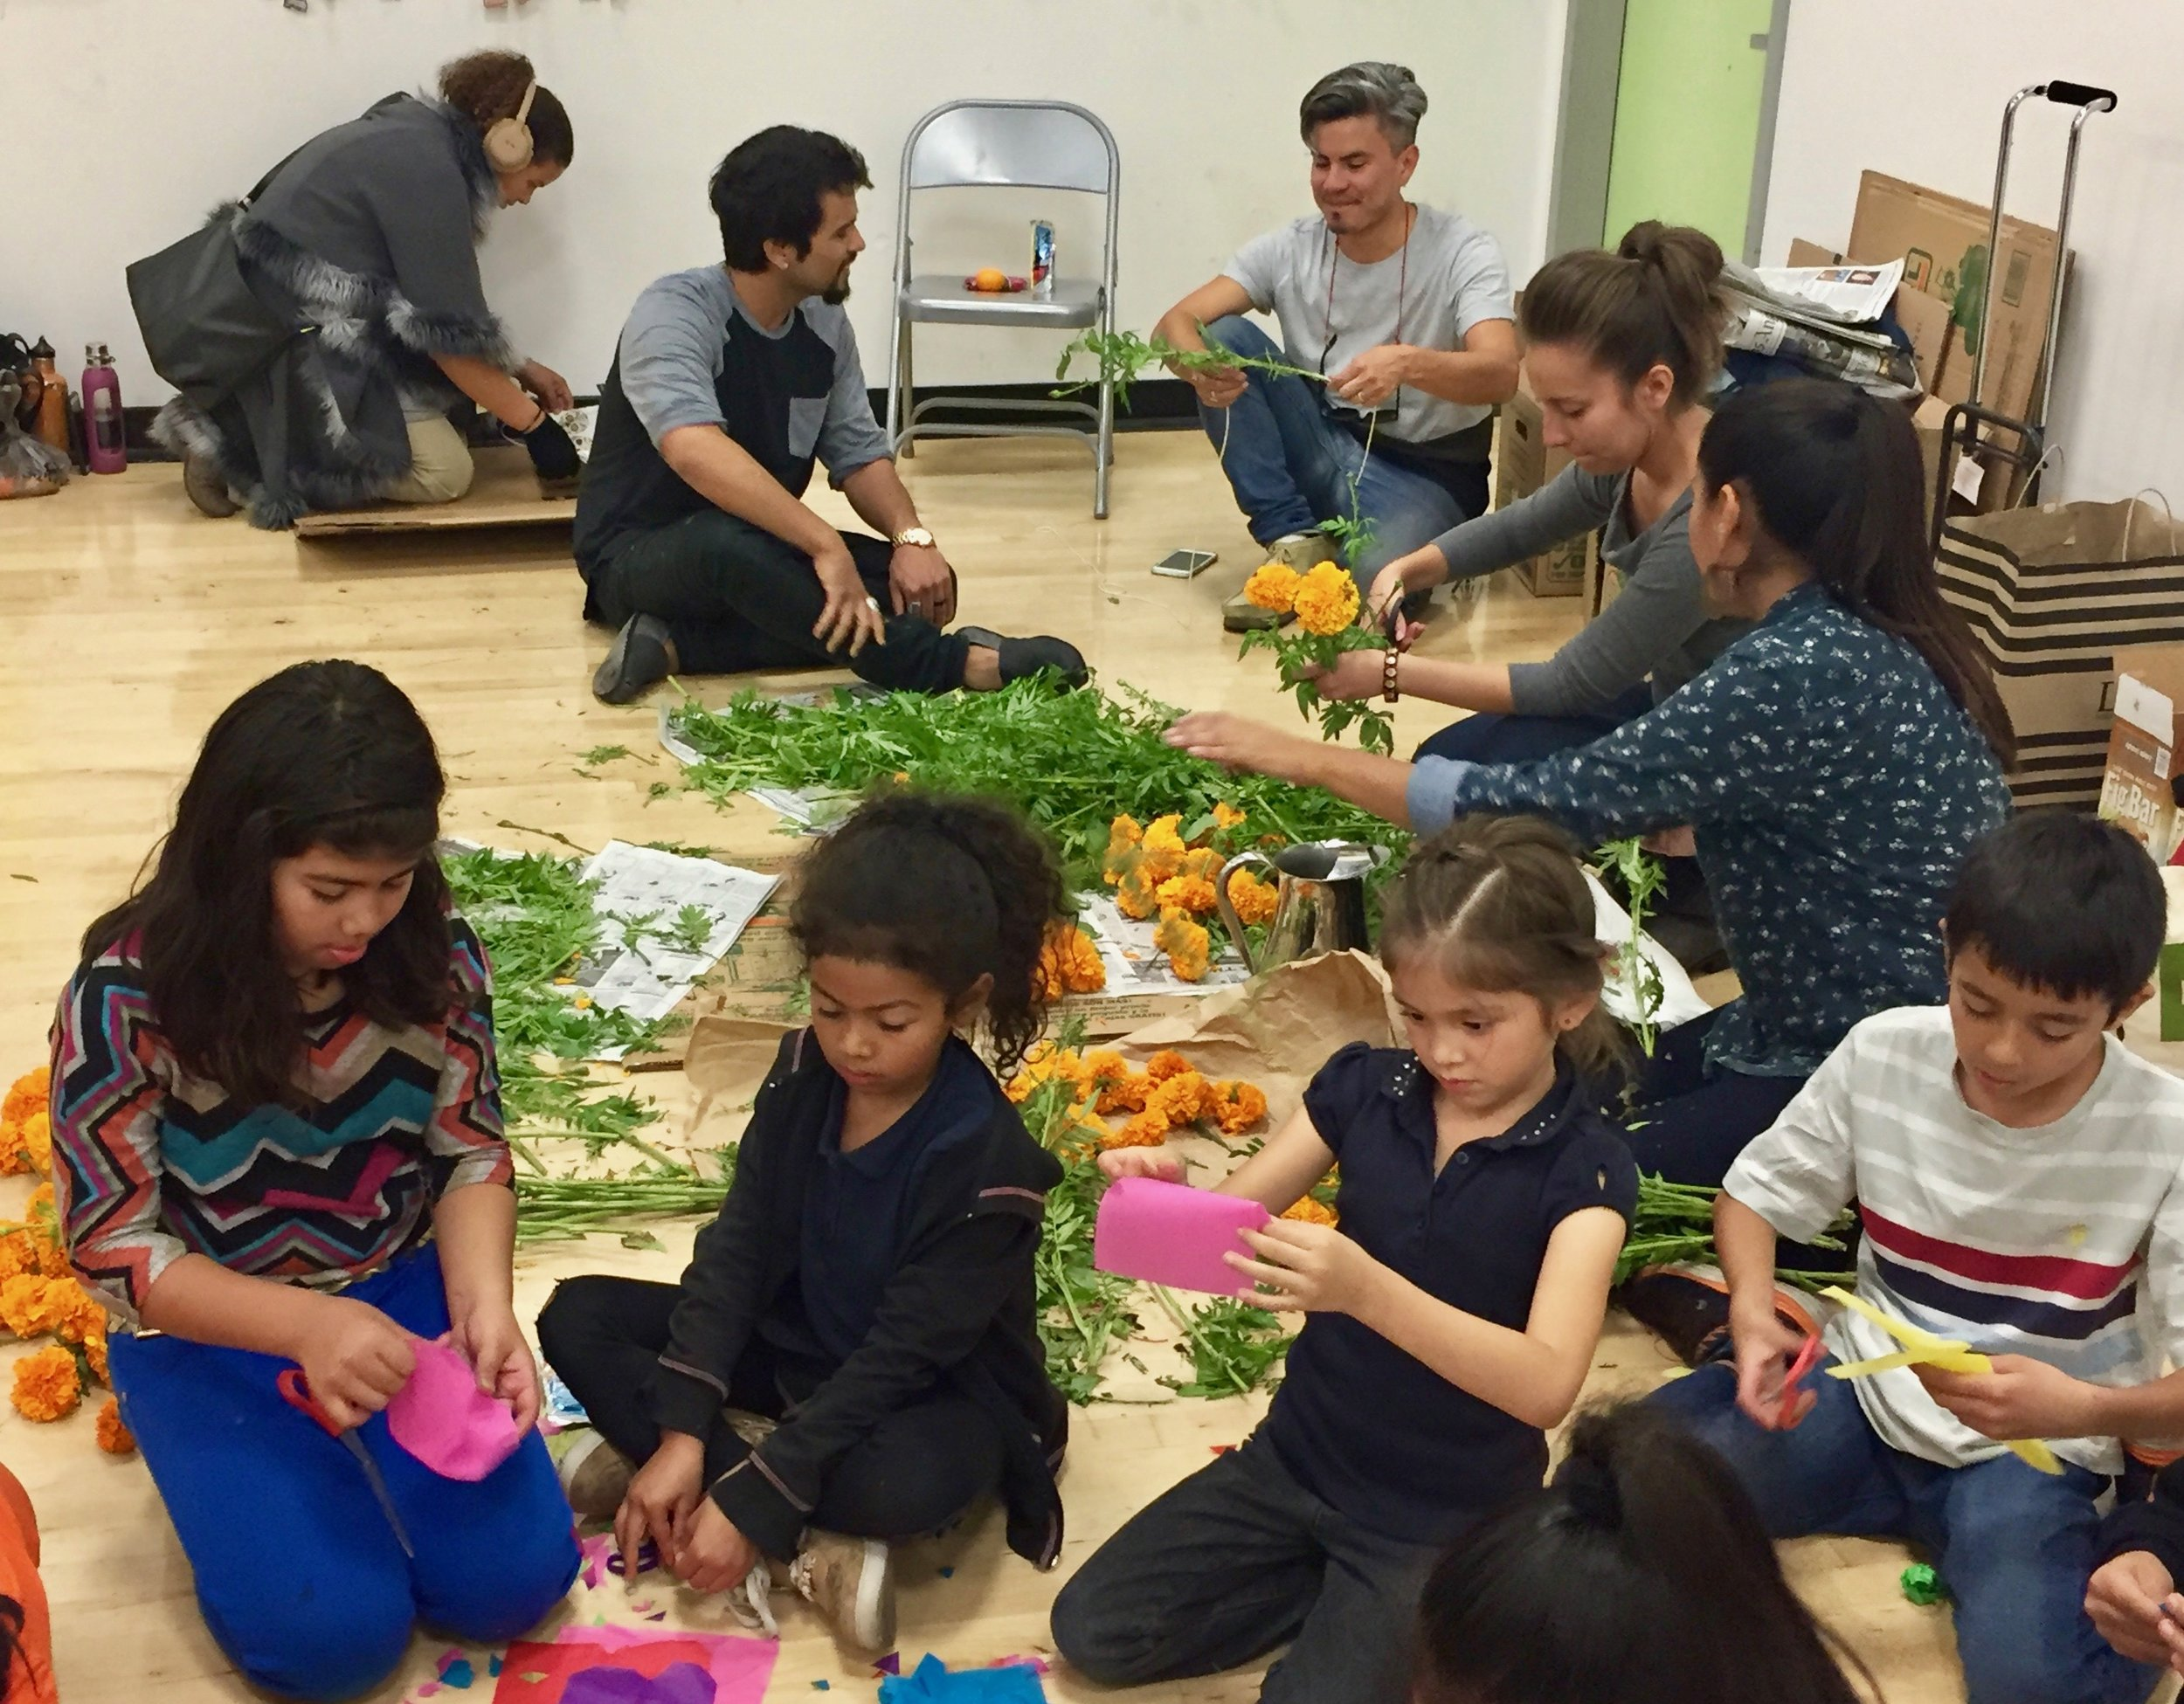 Screen shot 2017-02-03 at 5.22.32 PM.png